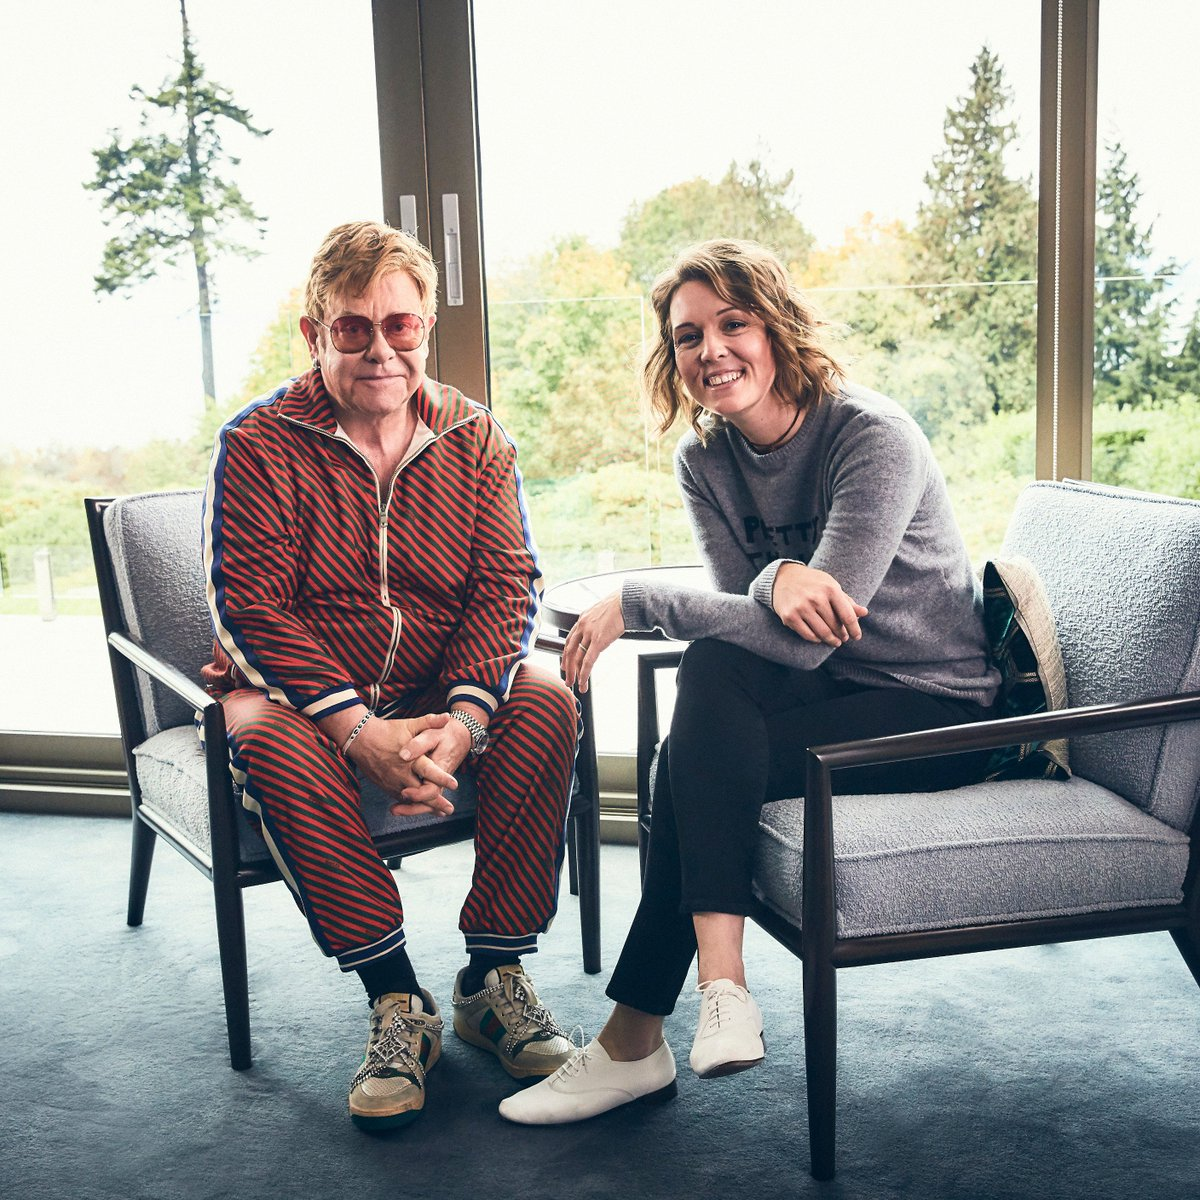 I get asked that question, Whats the best night youll never forget? And that was the night. @eltonofficial talks #EltonJohnBook, performing with @johnlennon, and more. Watch as he takes questions from @brandicarlile. 🎥 apple.co/Elton-Me